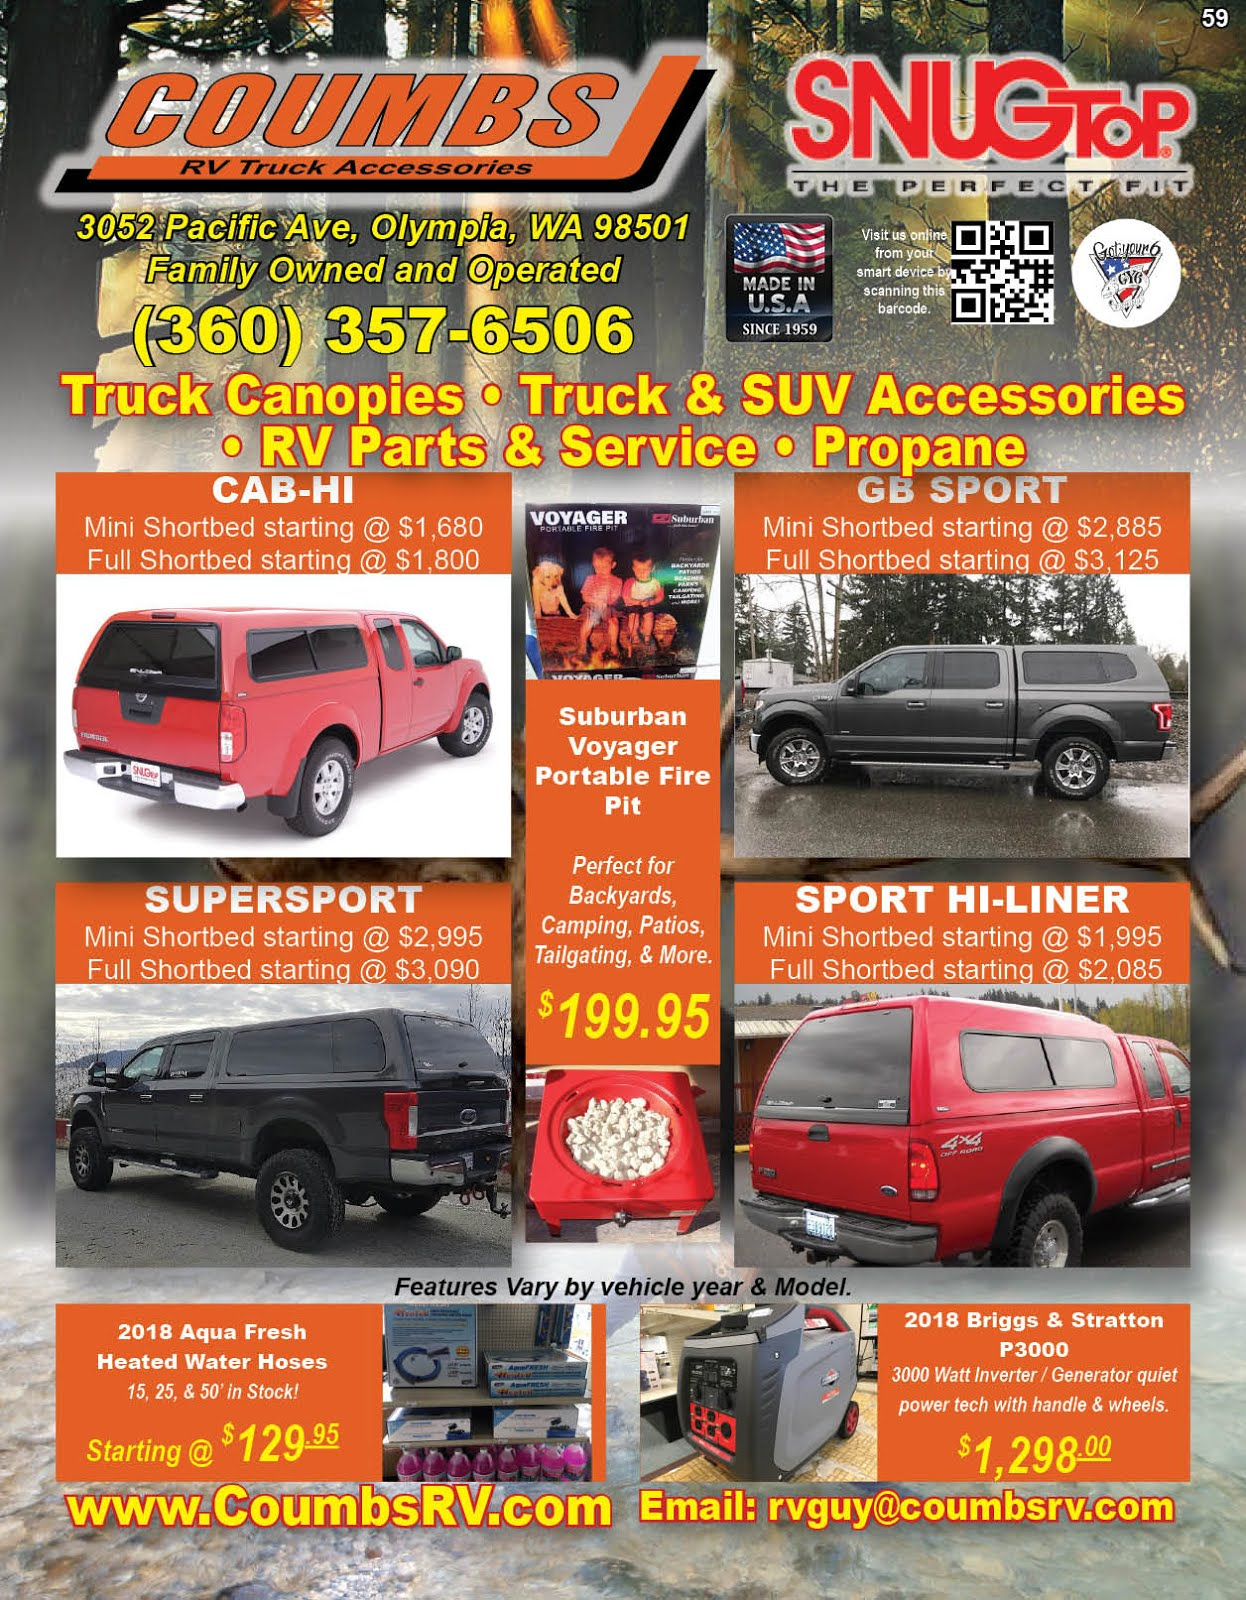 Coumbs RV & Truck Accessories